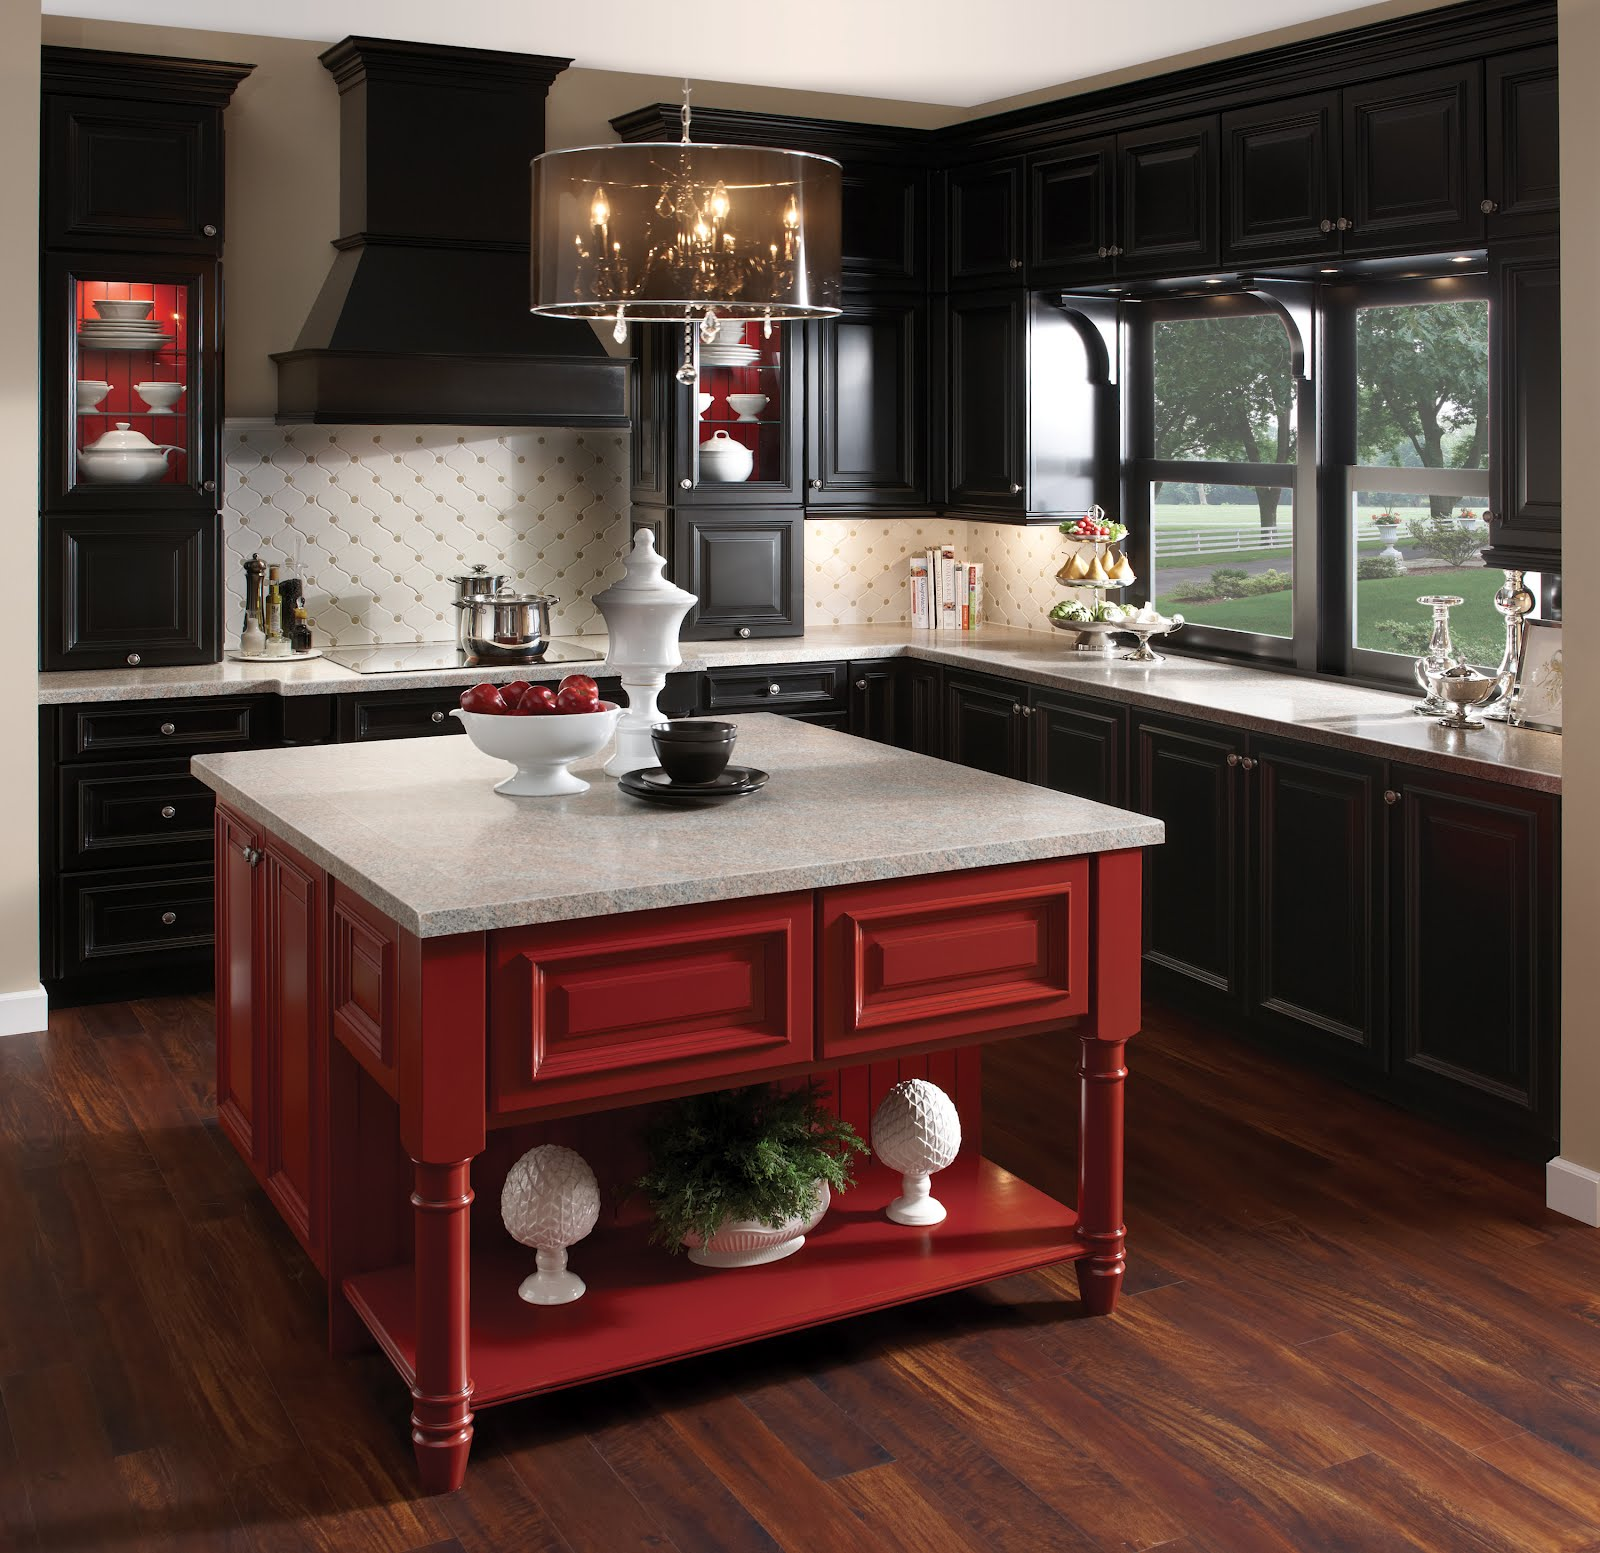 Kraftmaid Kitchen Islands Gold Notes 2012 Trends Post Cabinetry Guest Post By